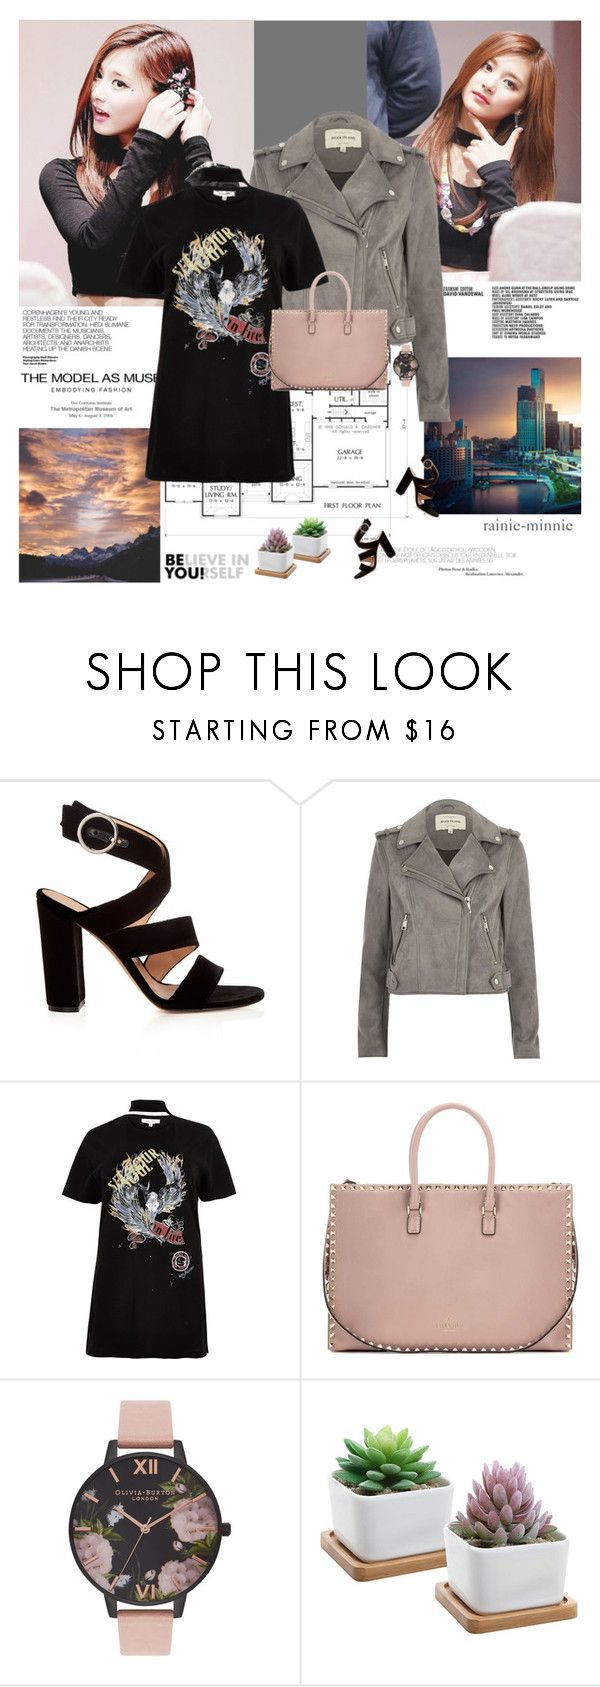 """""""Don't quit your day dream.."""" by rainie-minnie ❤ liked on Polyvore featuring Hedi Slimane, Rene, Gianvito Rossi, River Island, Valentino and Olivia Burton"""